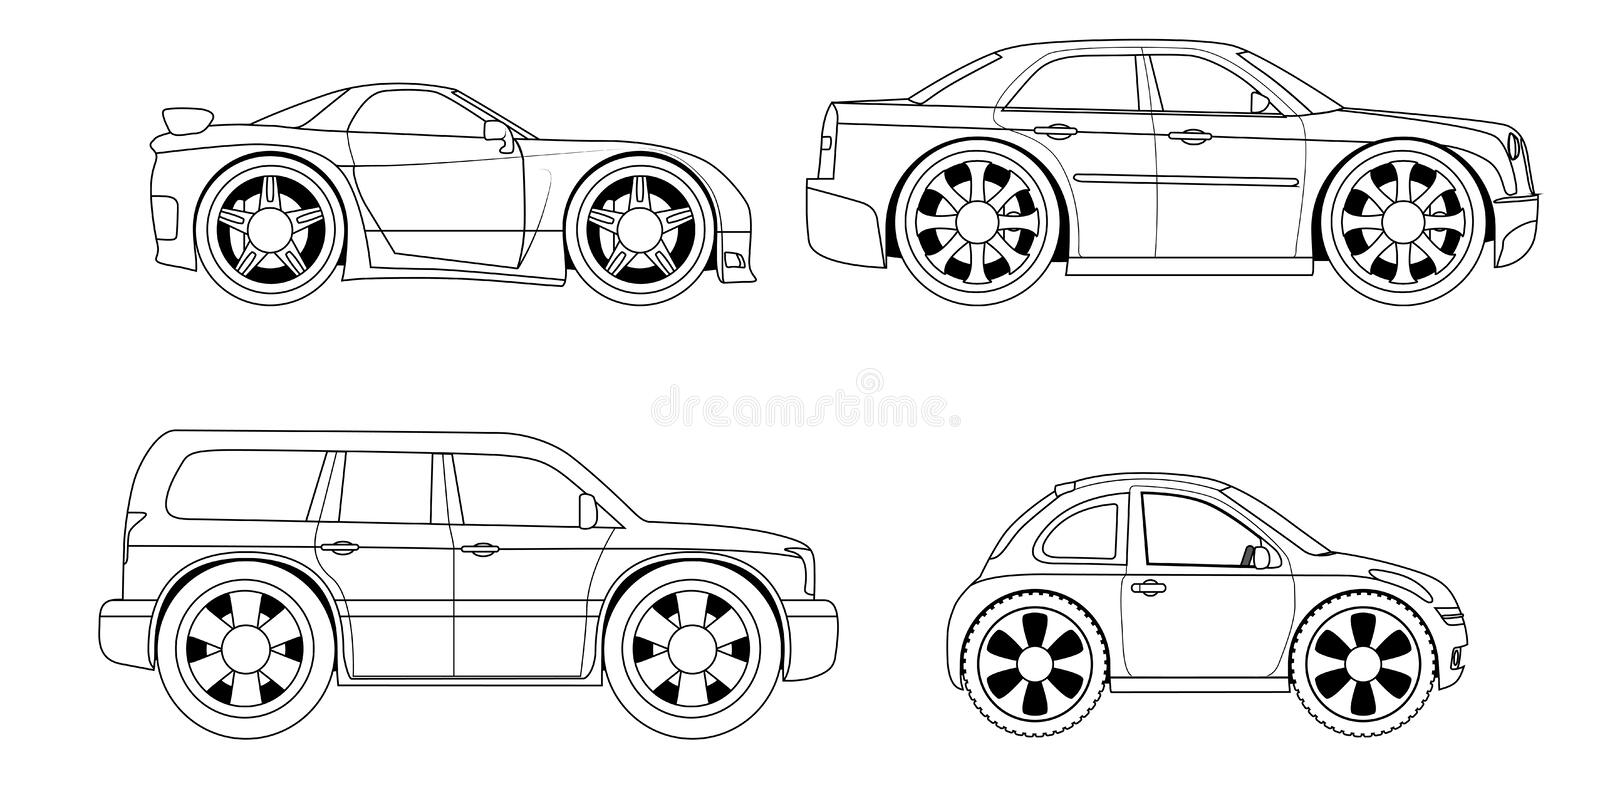 Coloring book: stylized cars set vector illustration